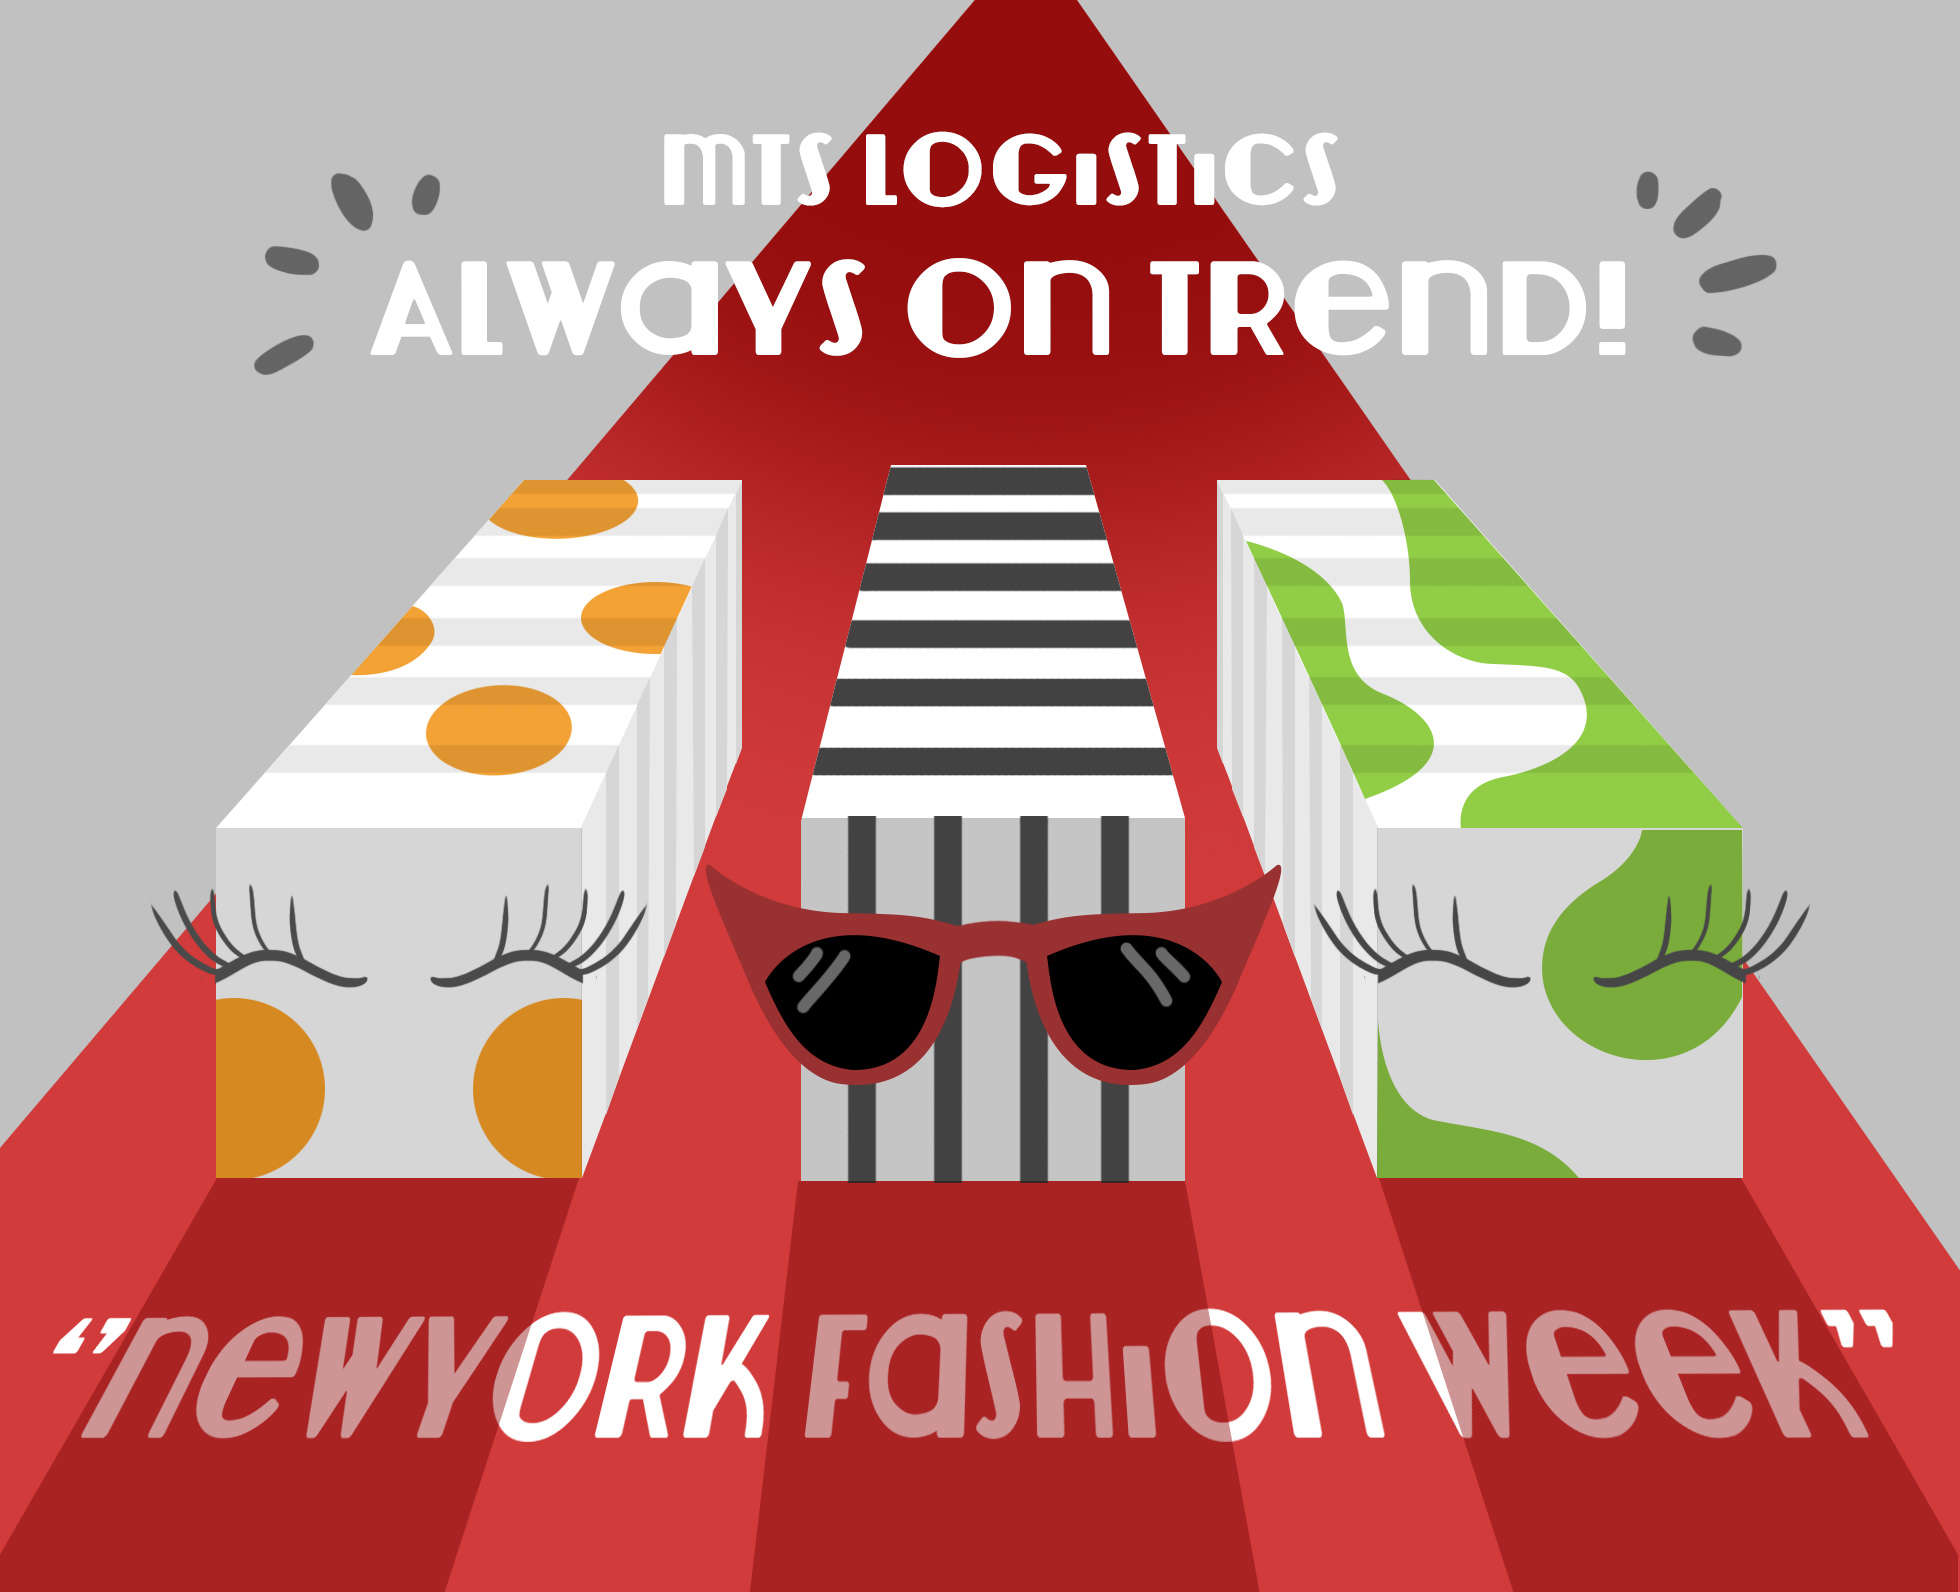 On time. On trend. MTS Logistics. #NYFW